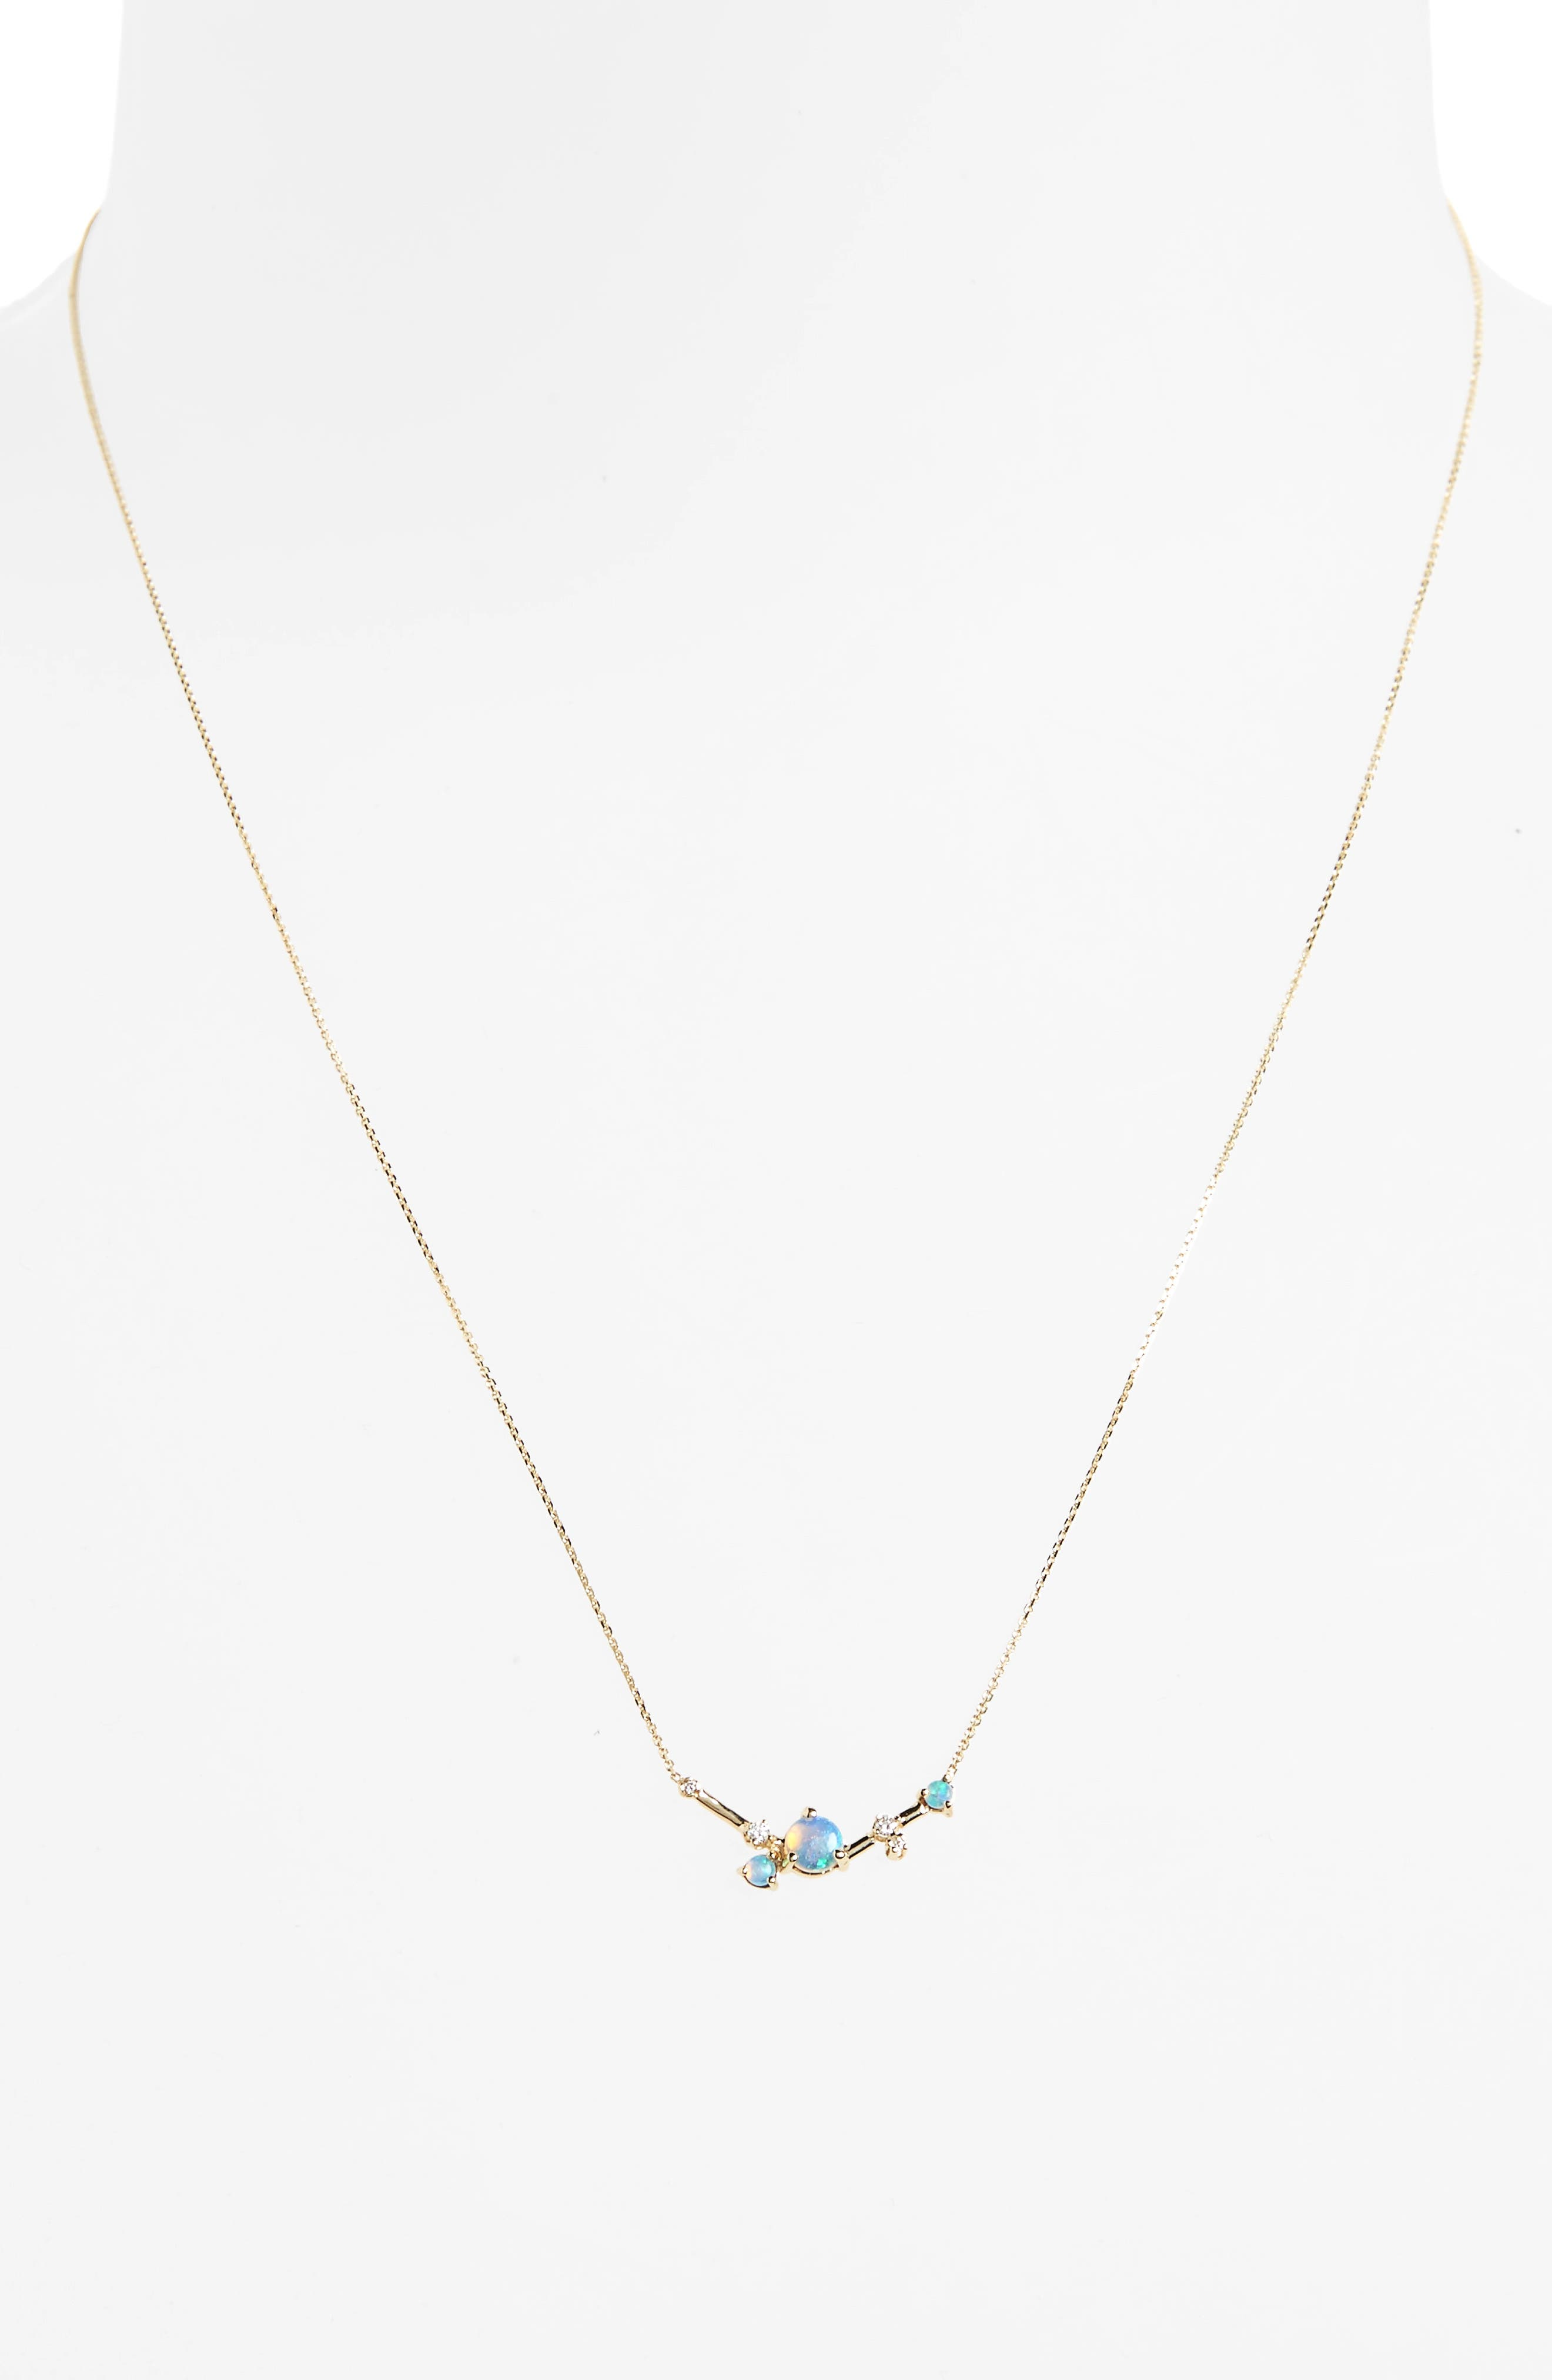 Organic Triangle Opal & Diamond Necklace,                             Alternate thumbnail 2, color,